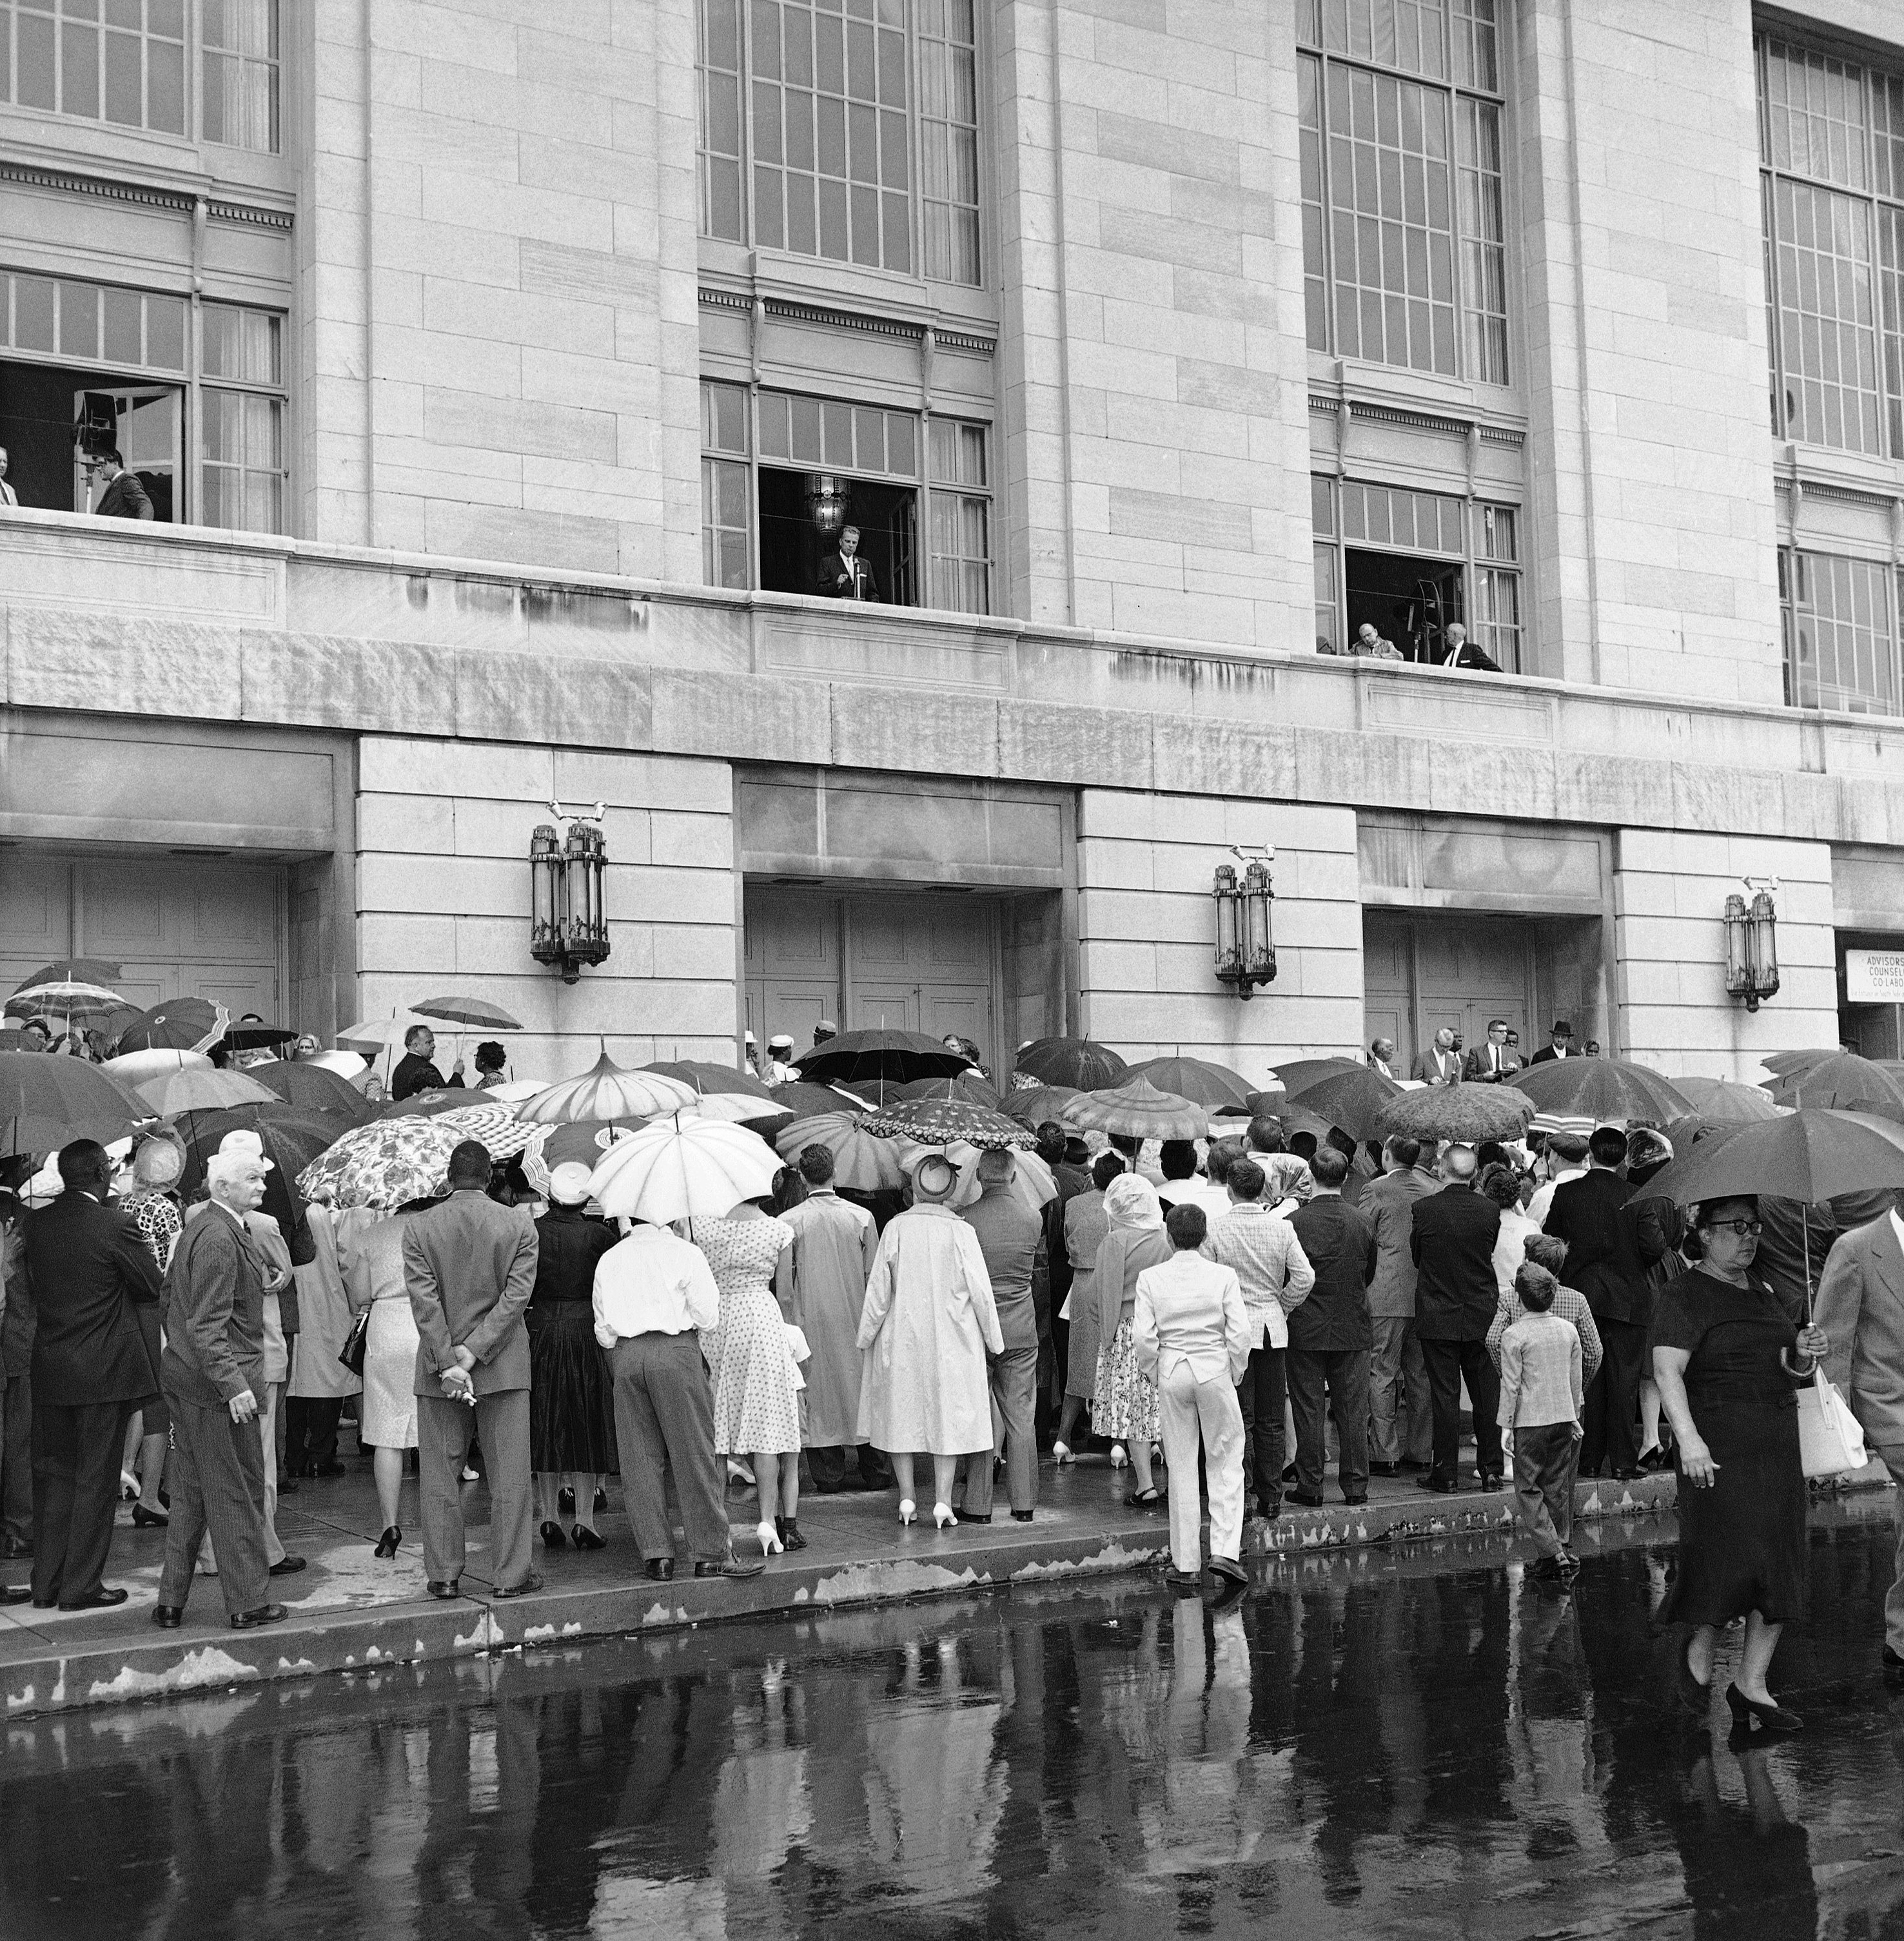 "<div class=""meta image-caption""><div class=""origin-logo origin-image ap""><span>AP</span></div><span class=""caption-text"">Part of an overflow crowd estimated at 2,000 stands in rain outside Philadelphia's Convention Hall on August 20, 1961 to hear brief talk by Evangelist Billy Graham. (AP)</span></div>"